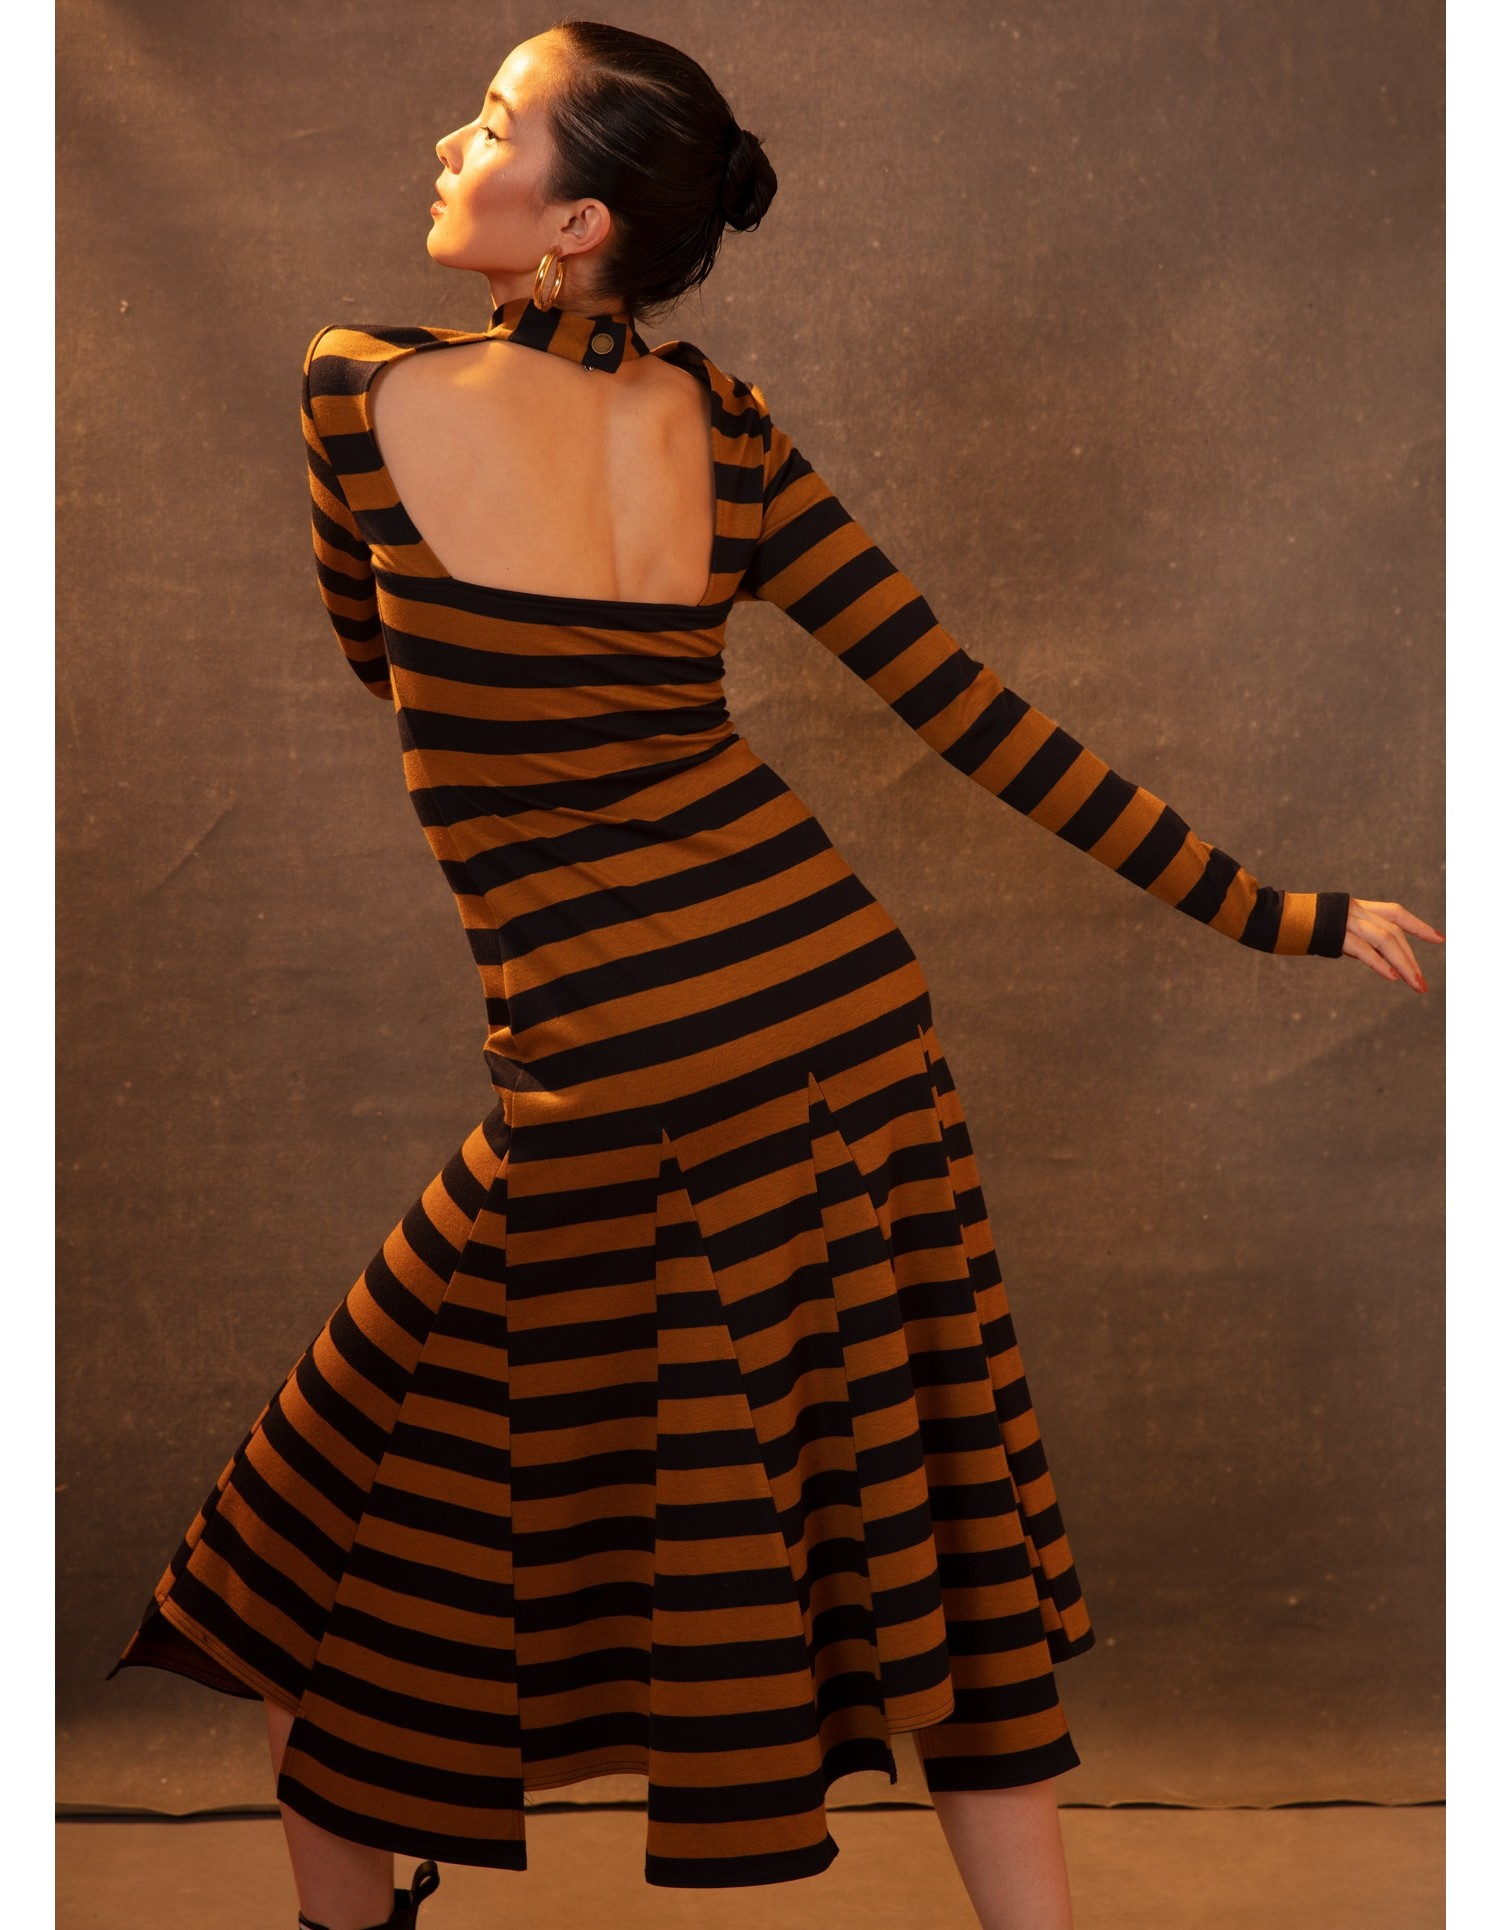 MONSE Stripe Godet Dress in Tan and Midnight on Model Back View